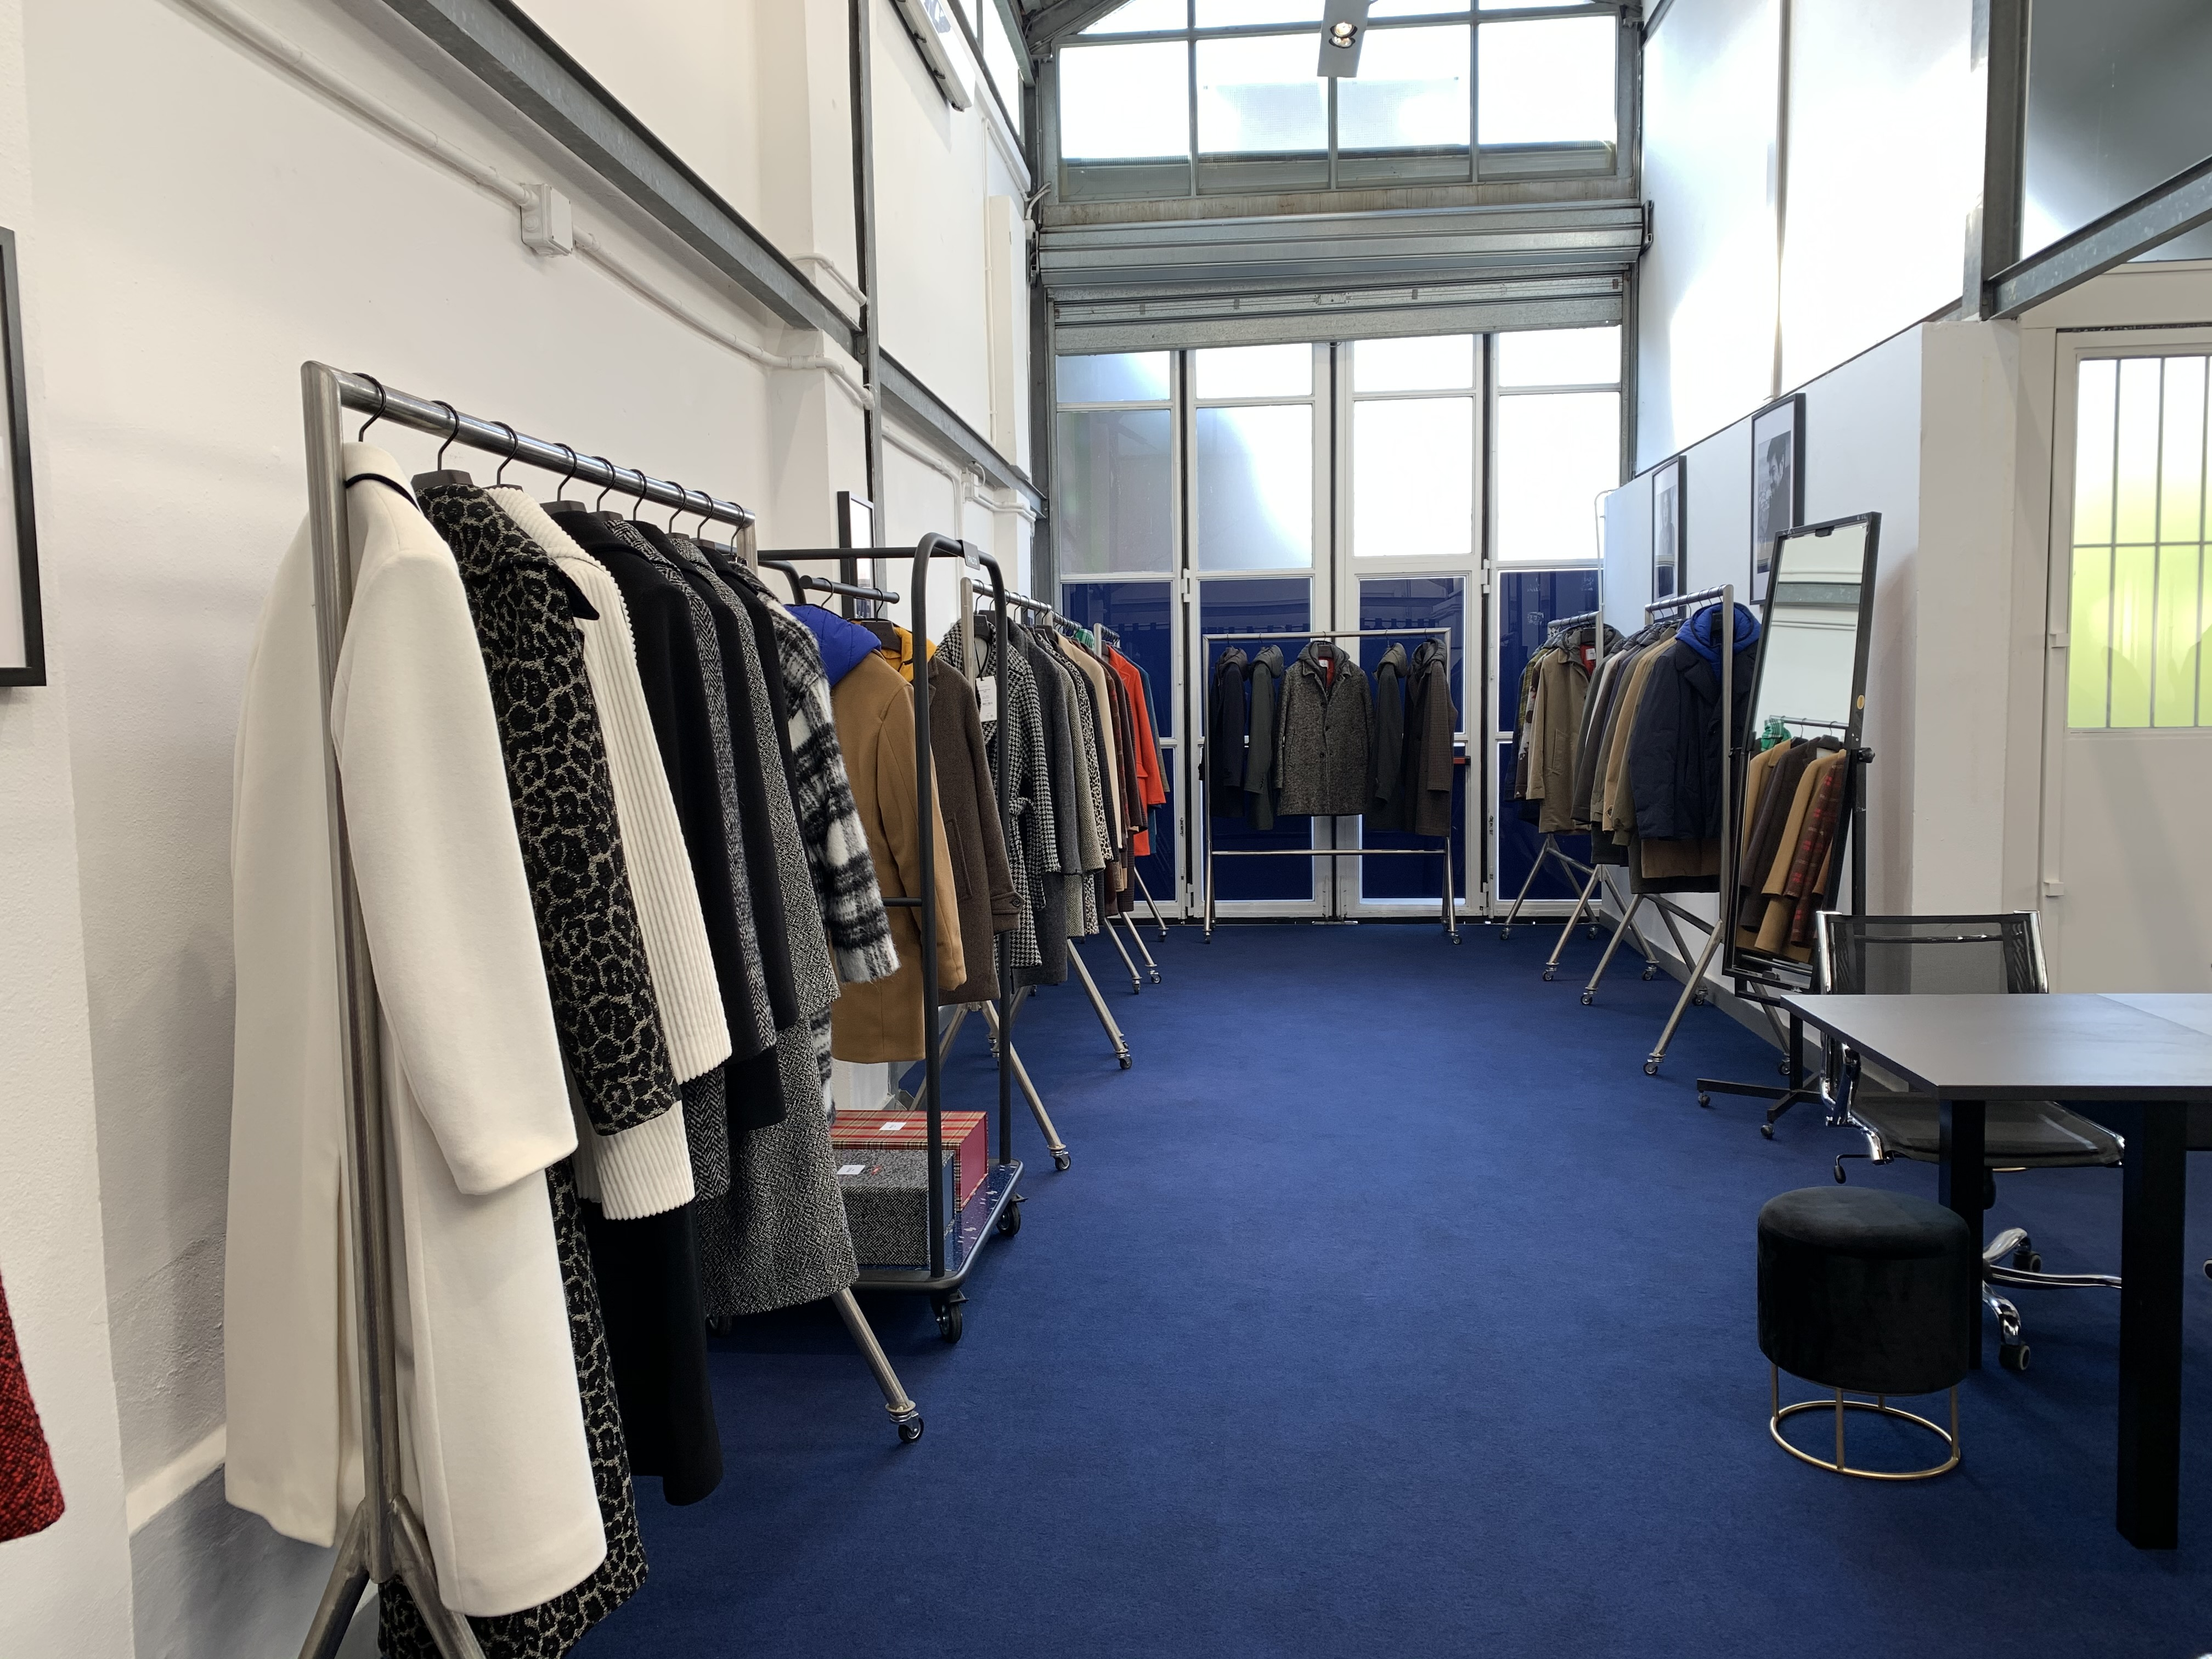 Sales campaign FW2020 - Paltò in Via Tortona 31 - 2